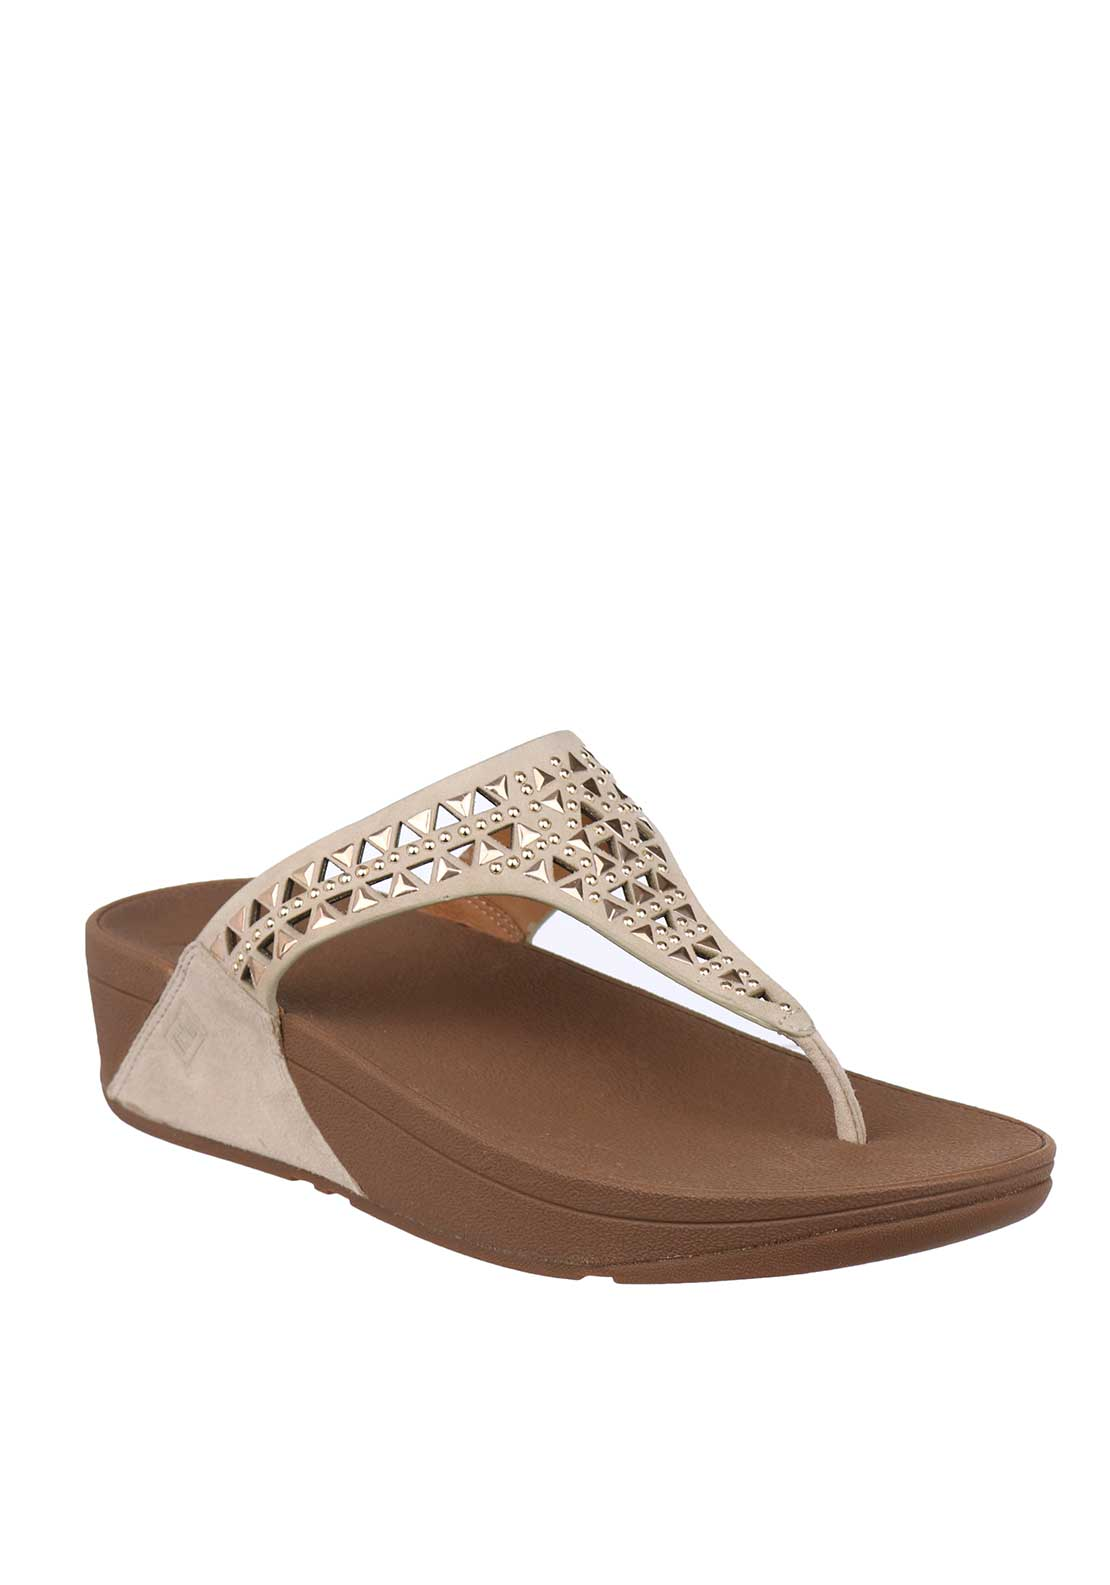 Fit Flop™ Carmel™ Suede Toe Thong Sandals, Rose Gold